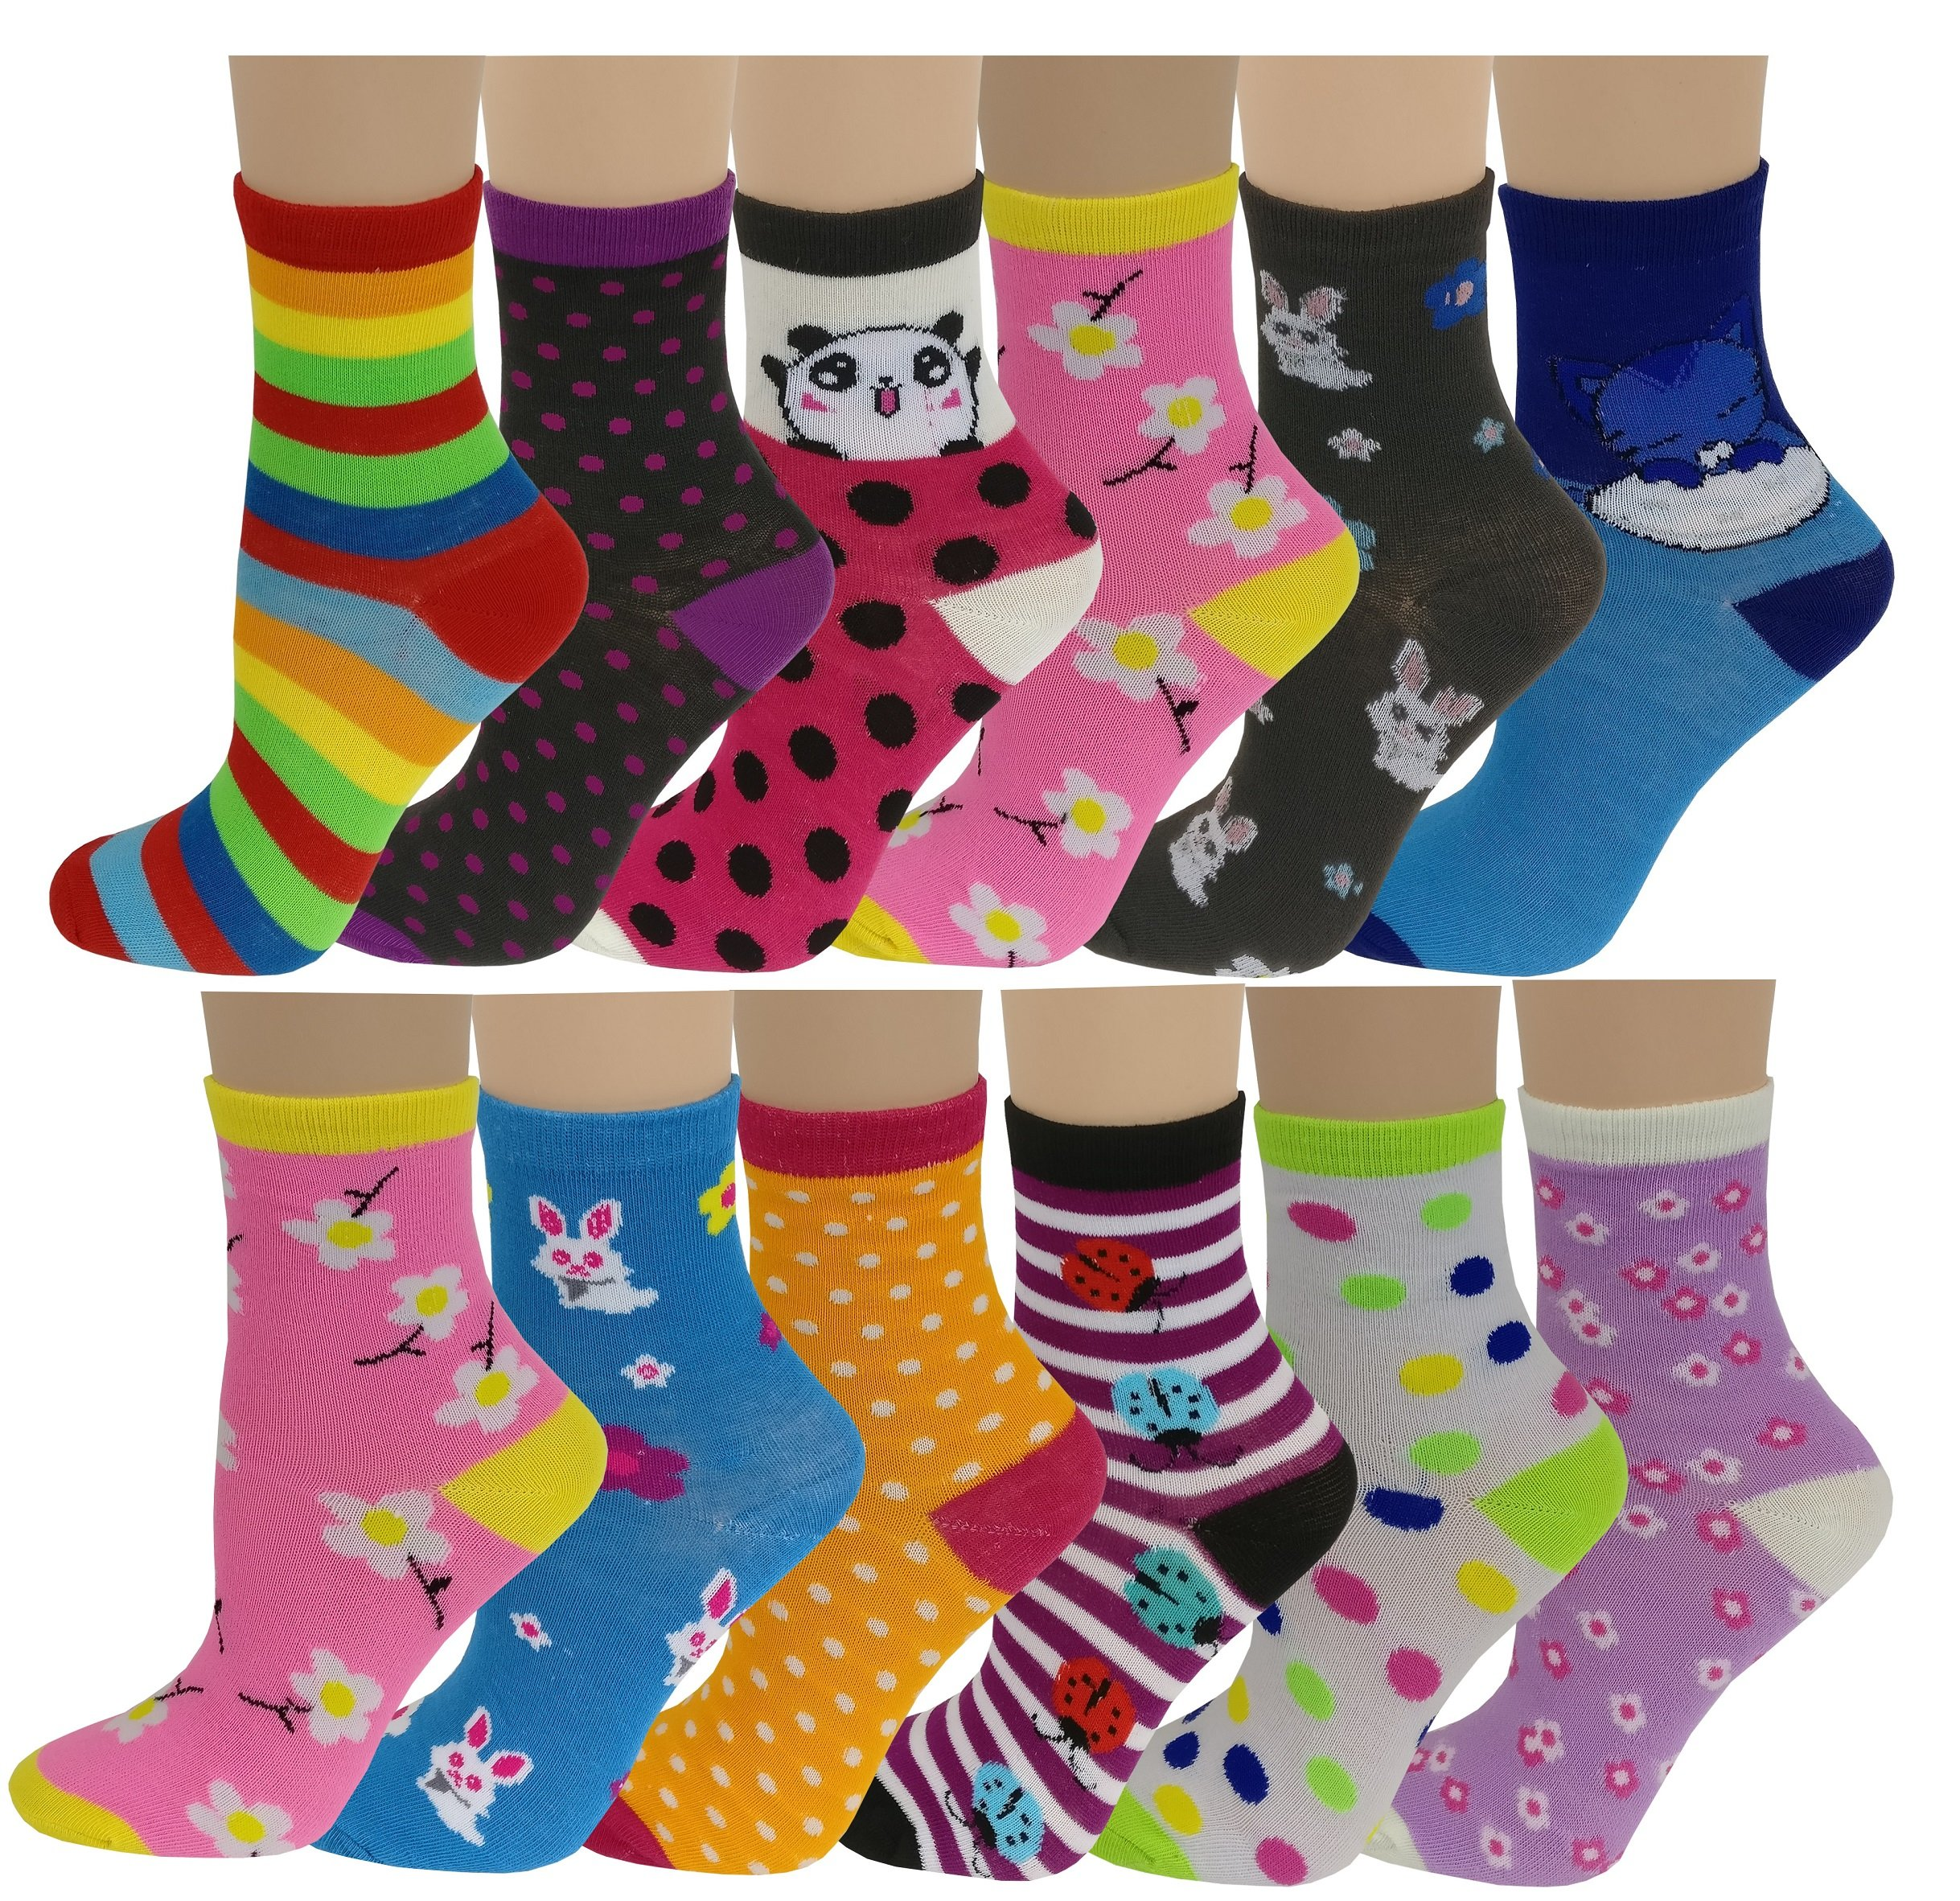 12 Pairs Pack Kids Girls Colorful Creative Fun Novelty Design Crew Socks (6-8, Pretty)